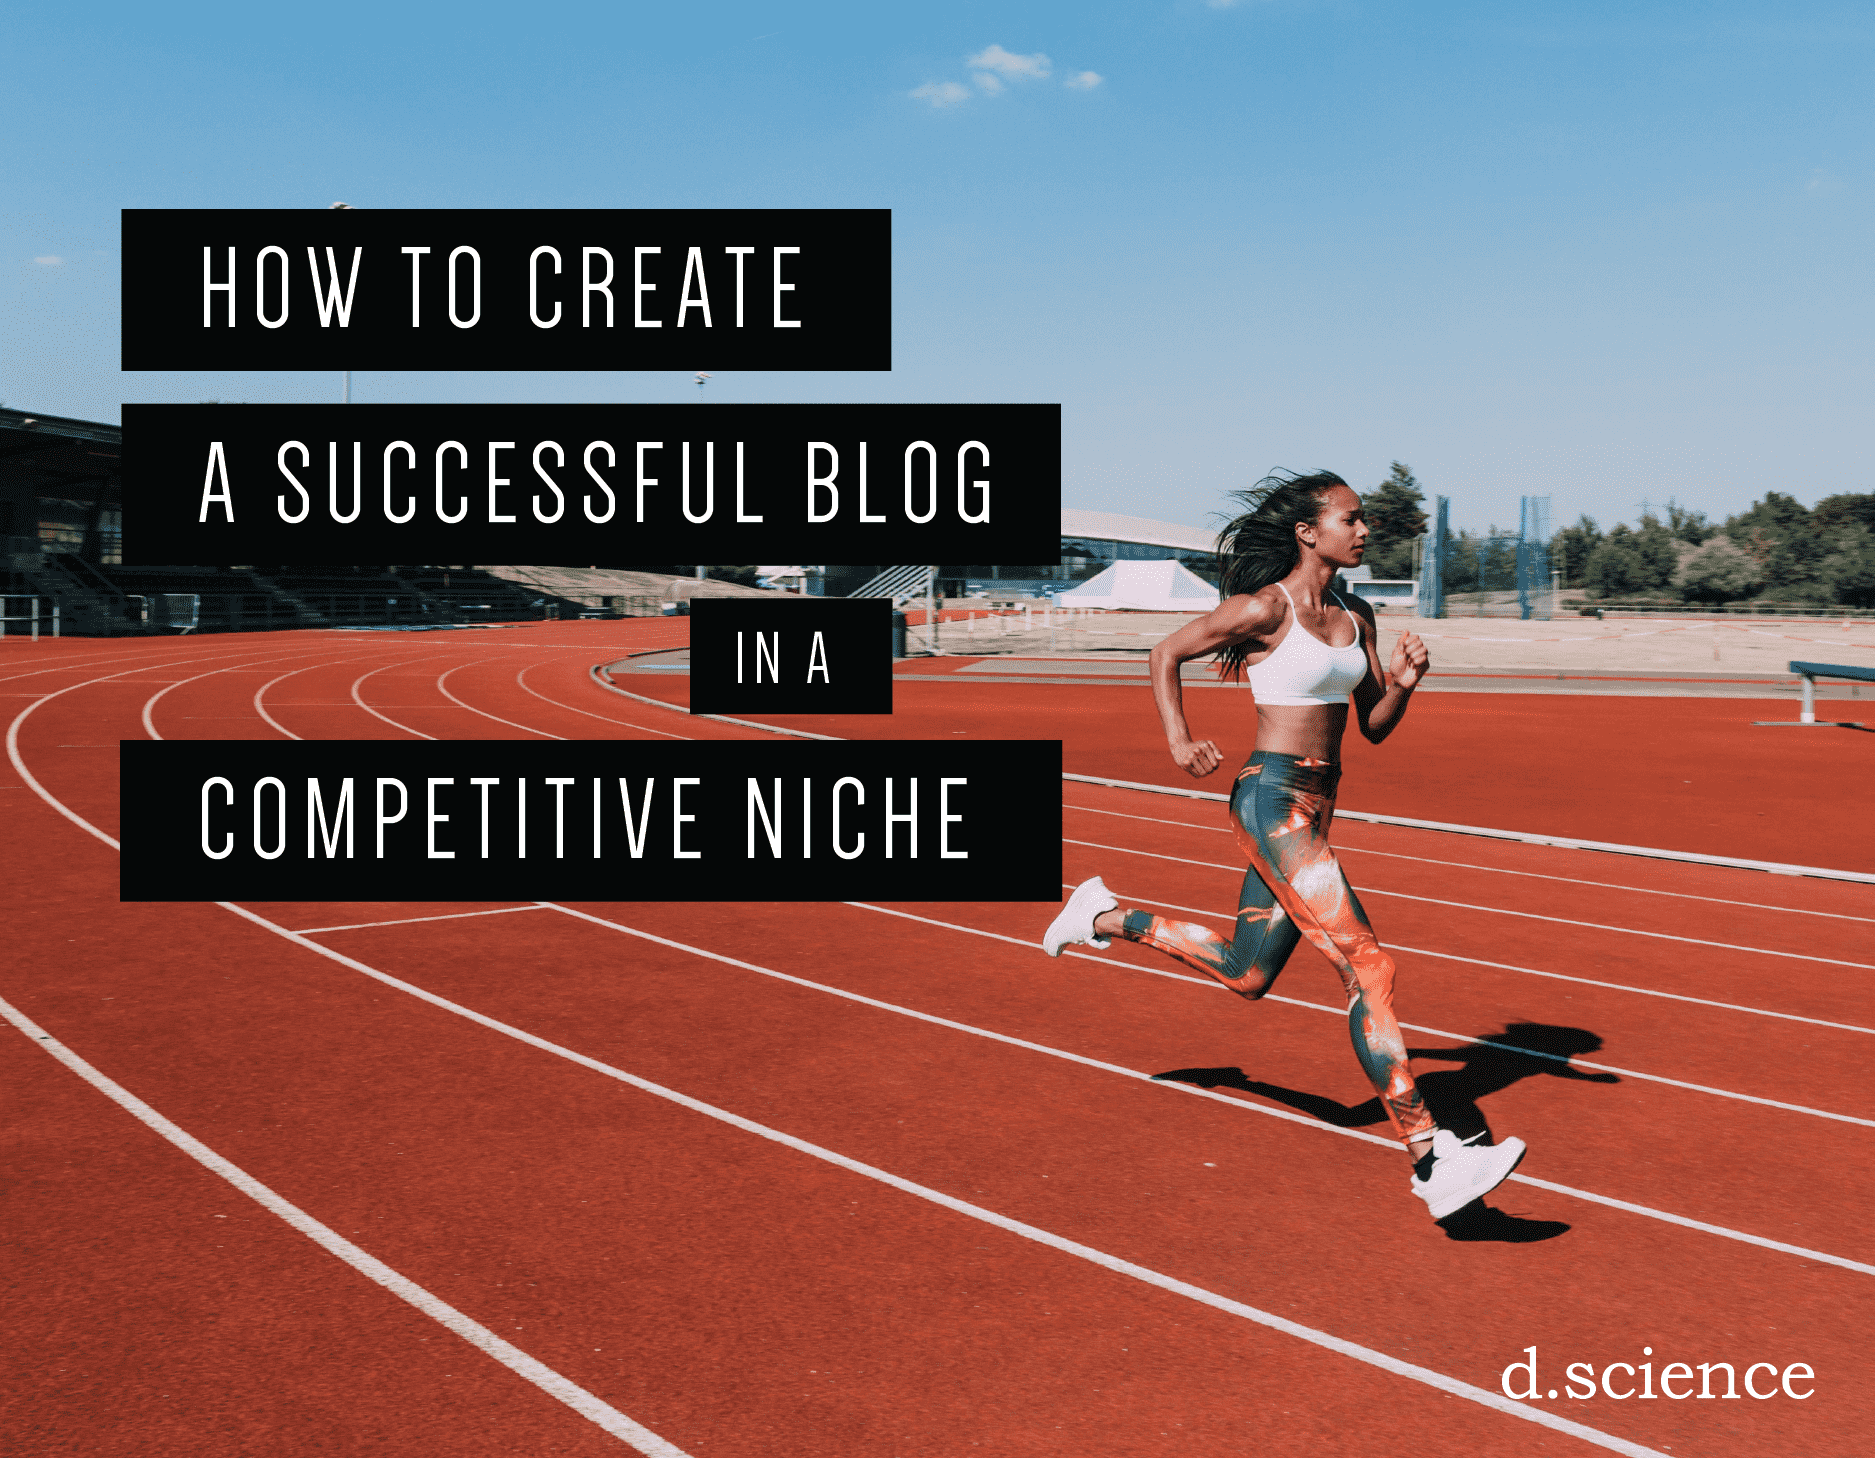 How to Create a Successful Blog in a Competitive Niche